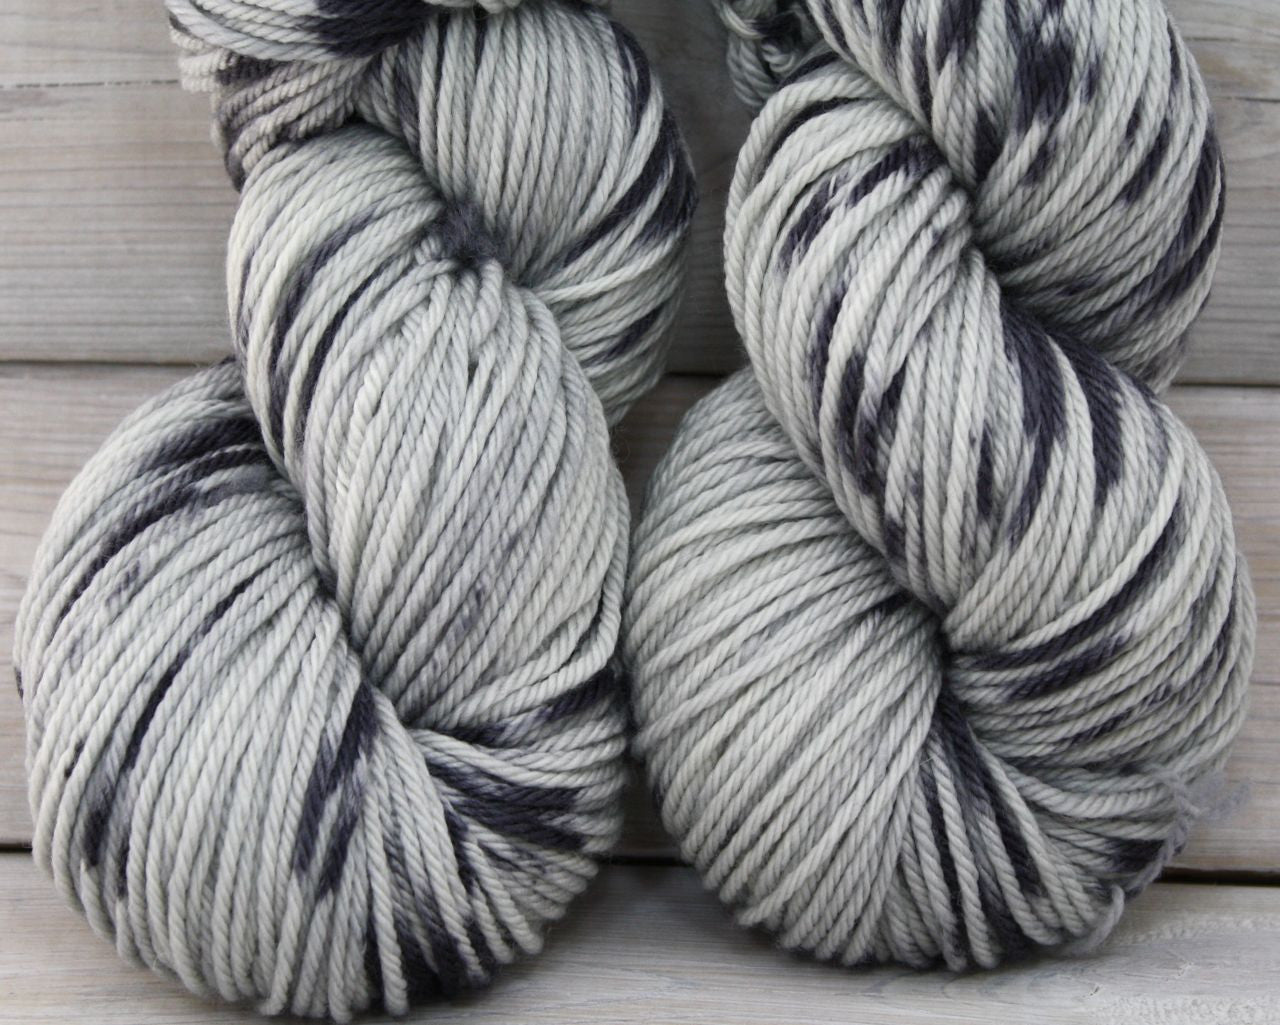 Supernova Yarn | Colorway: Snow Camo